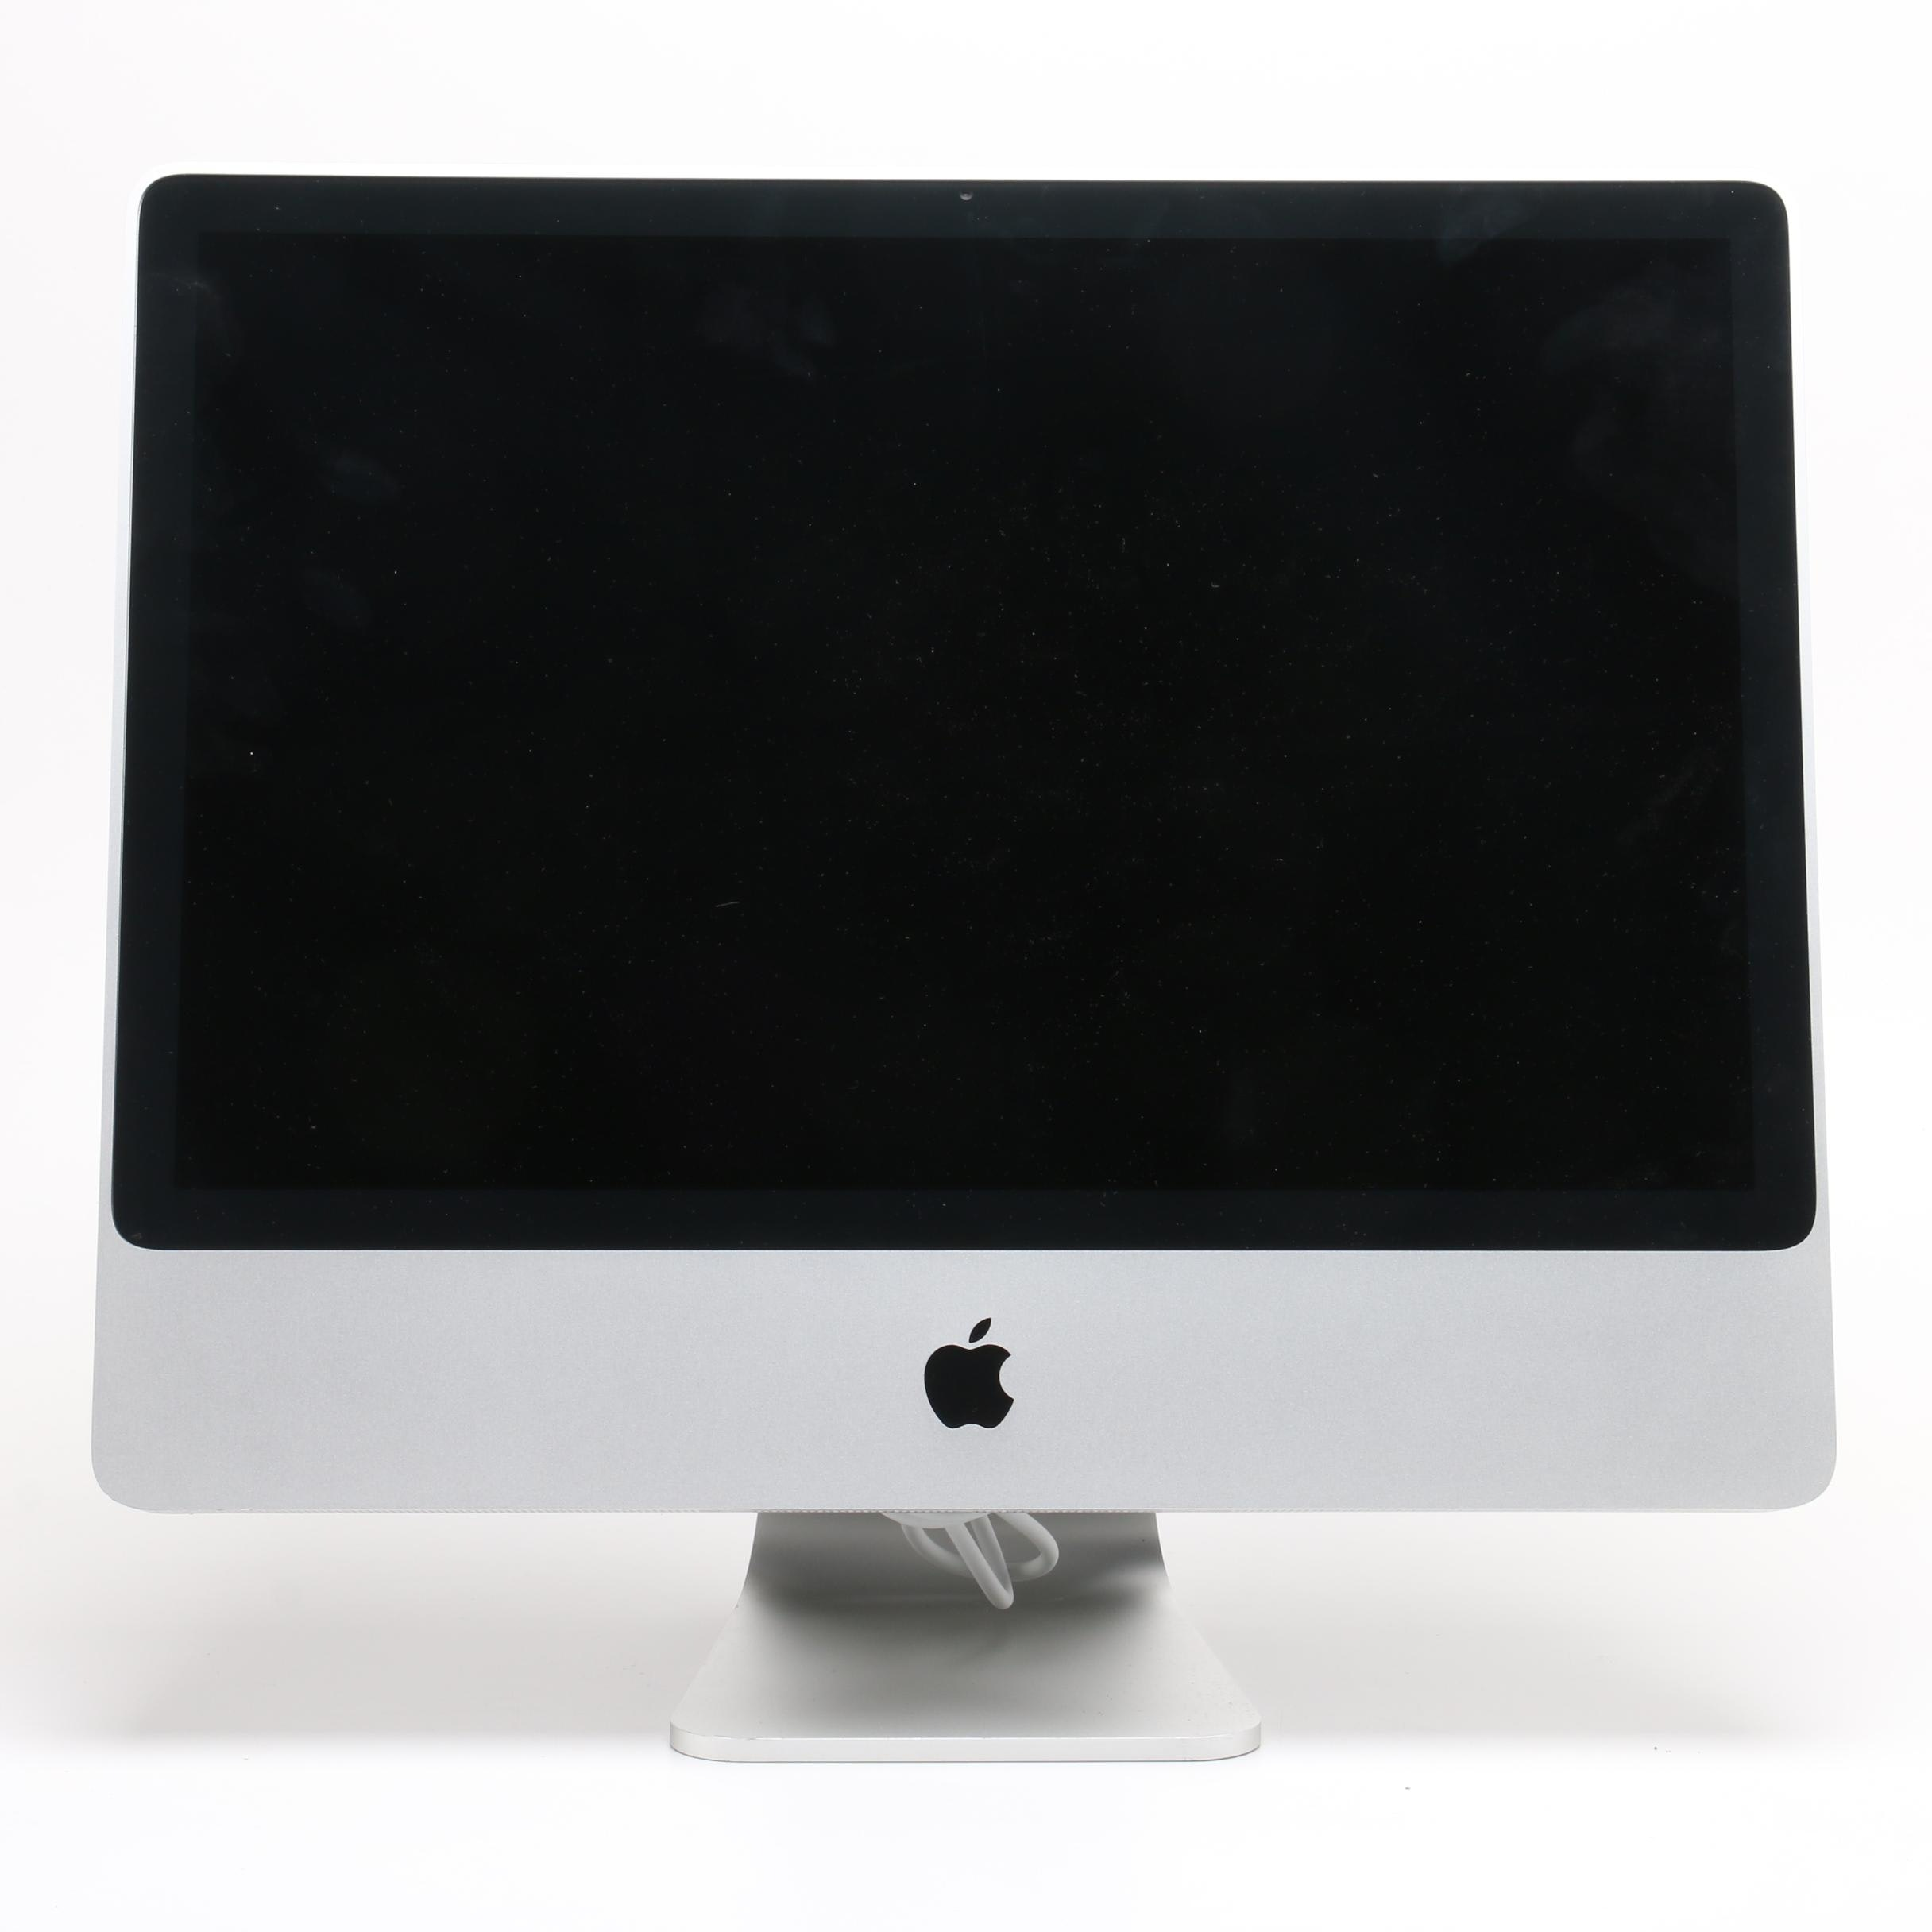 "24"" Apple iMac Desktop Computer"